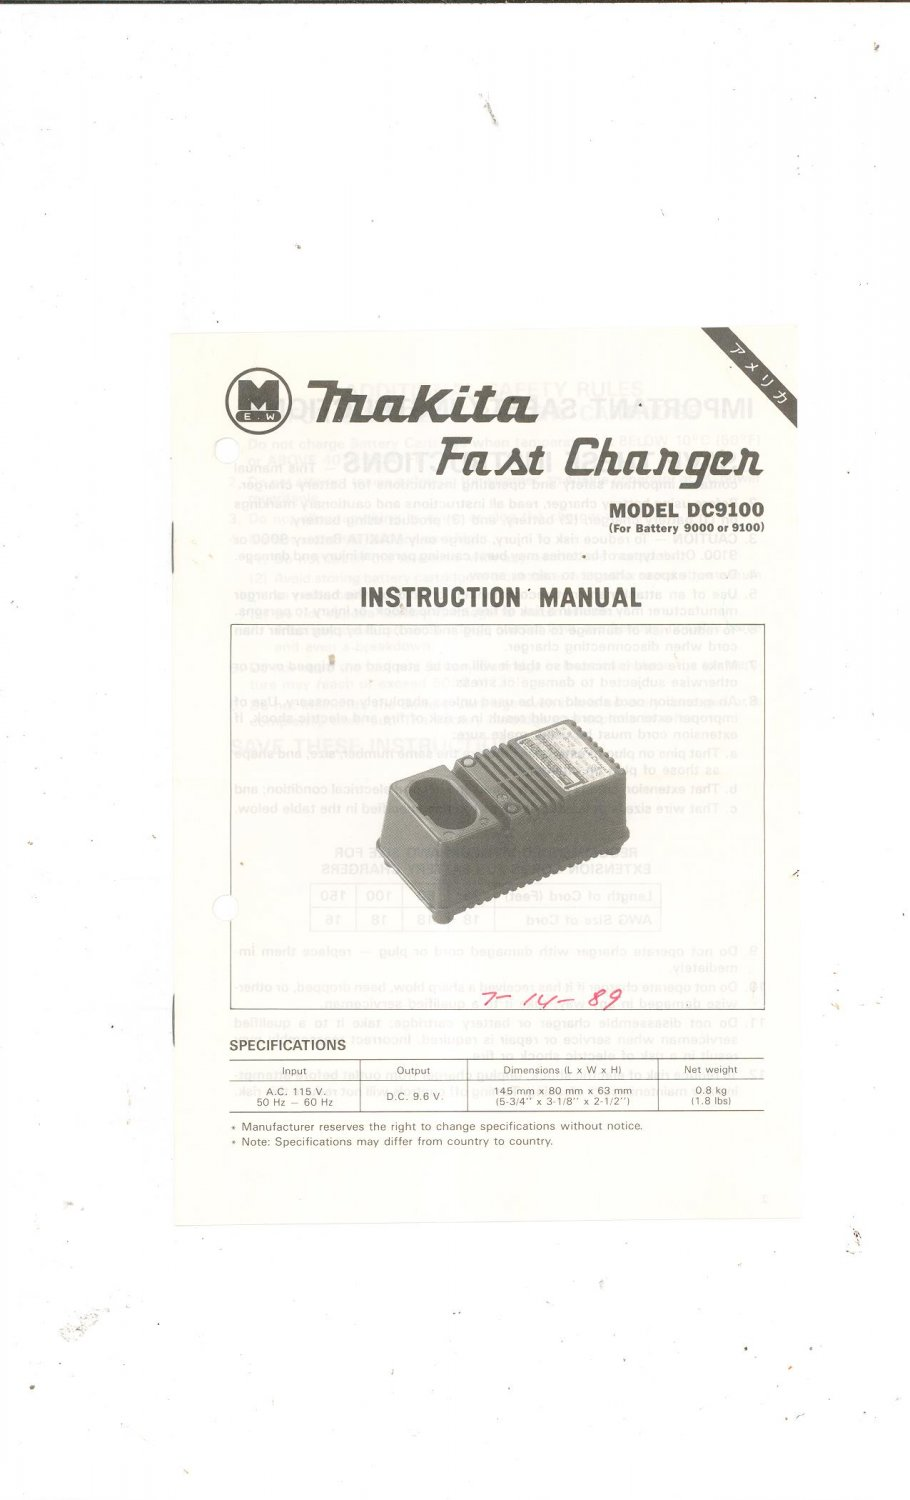 Makita Fast Charger Model DC9100 Instruction Manual Not PDF